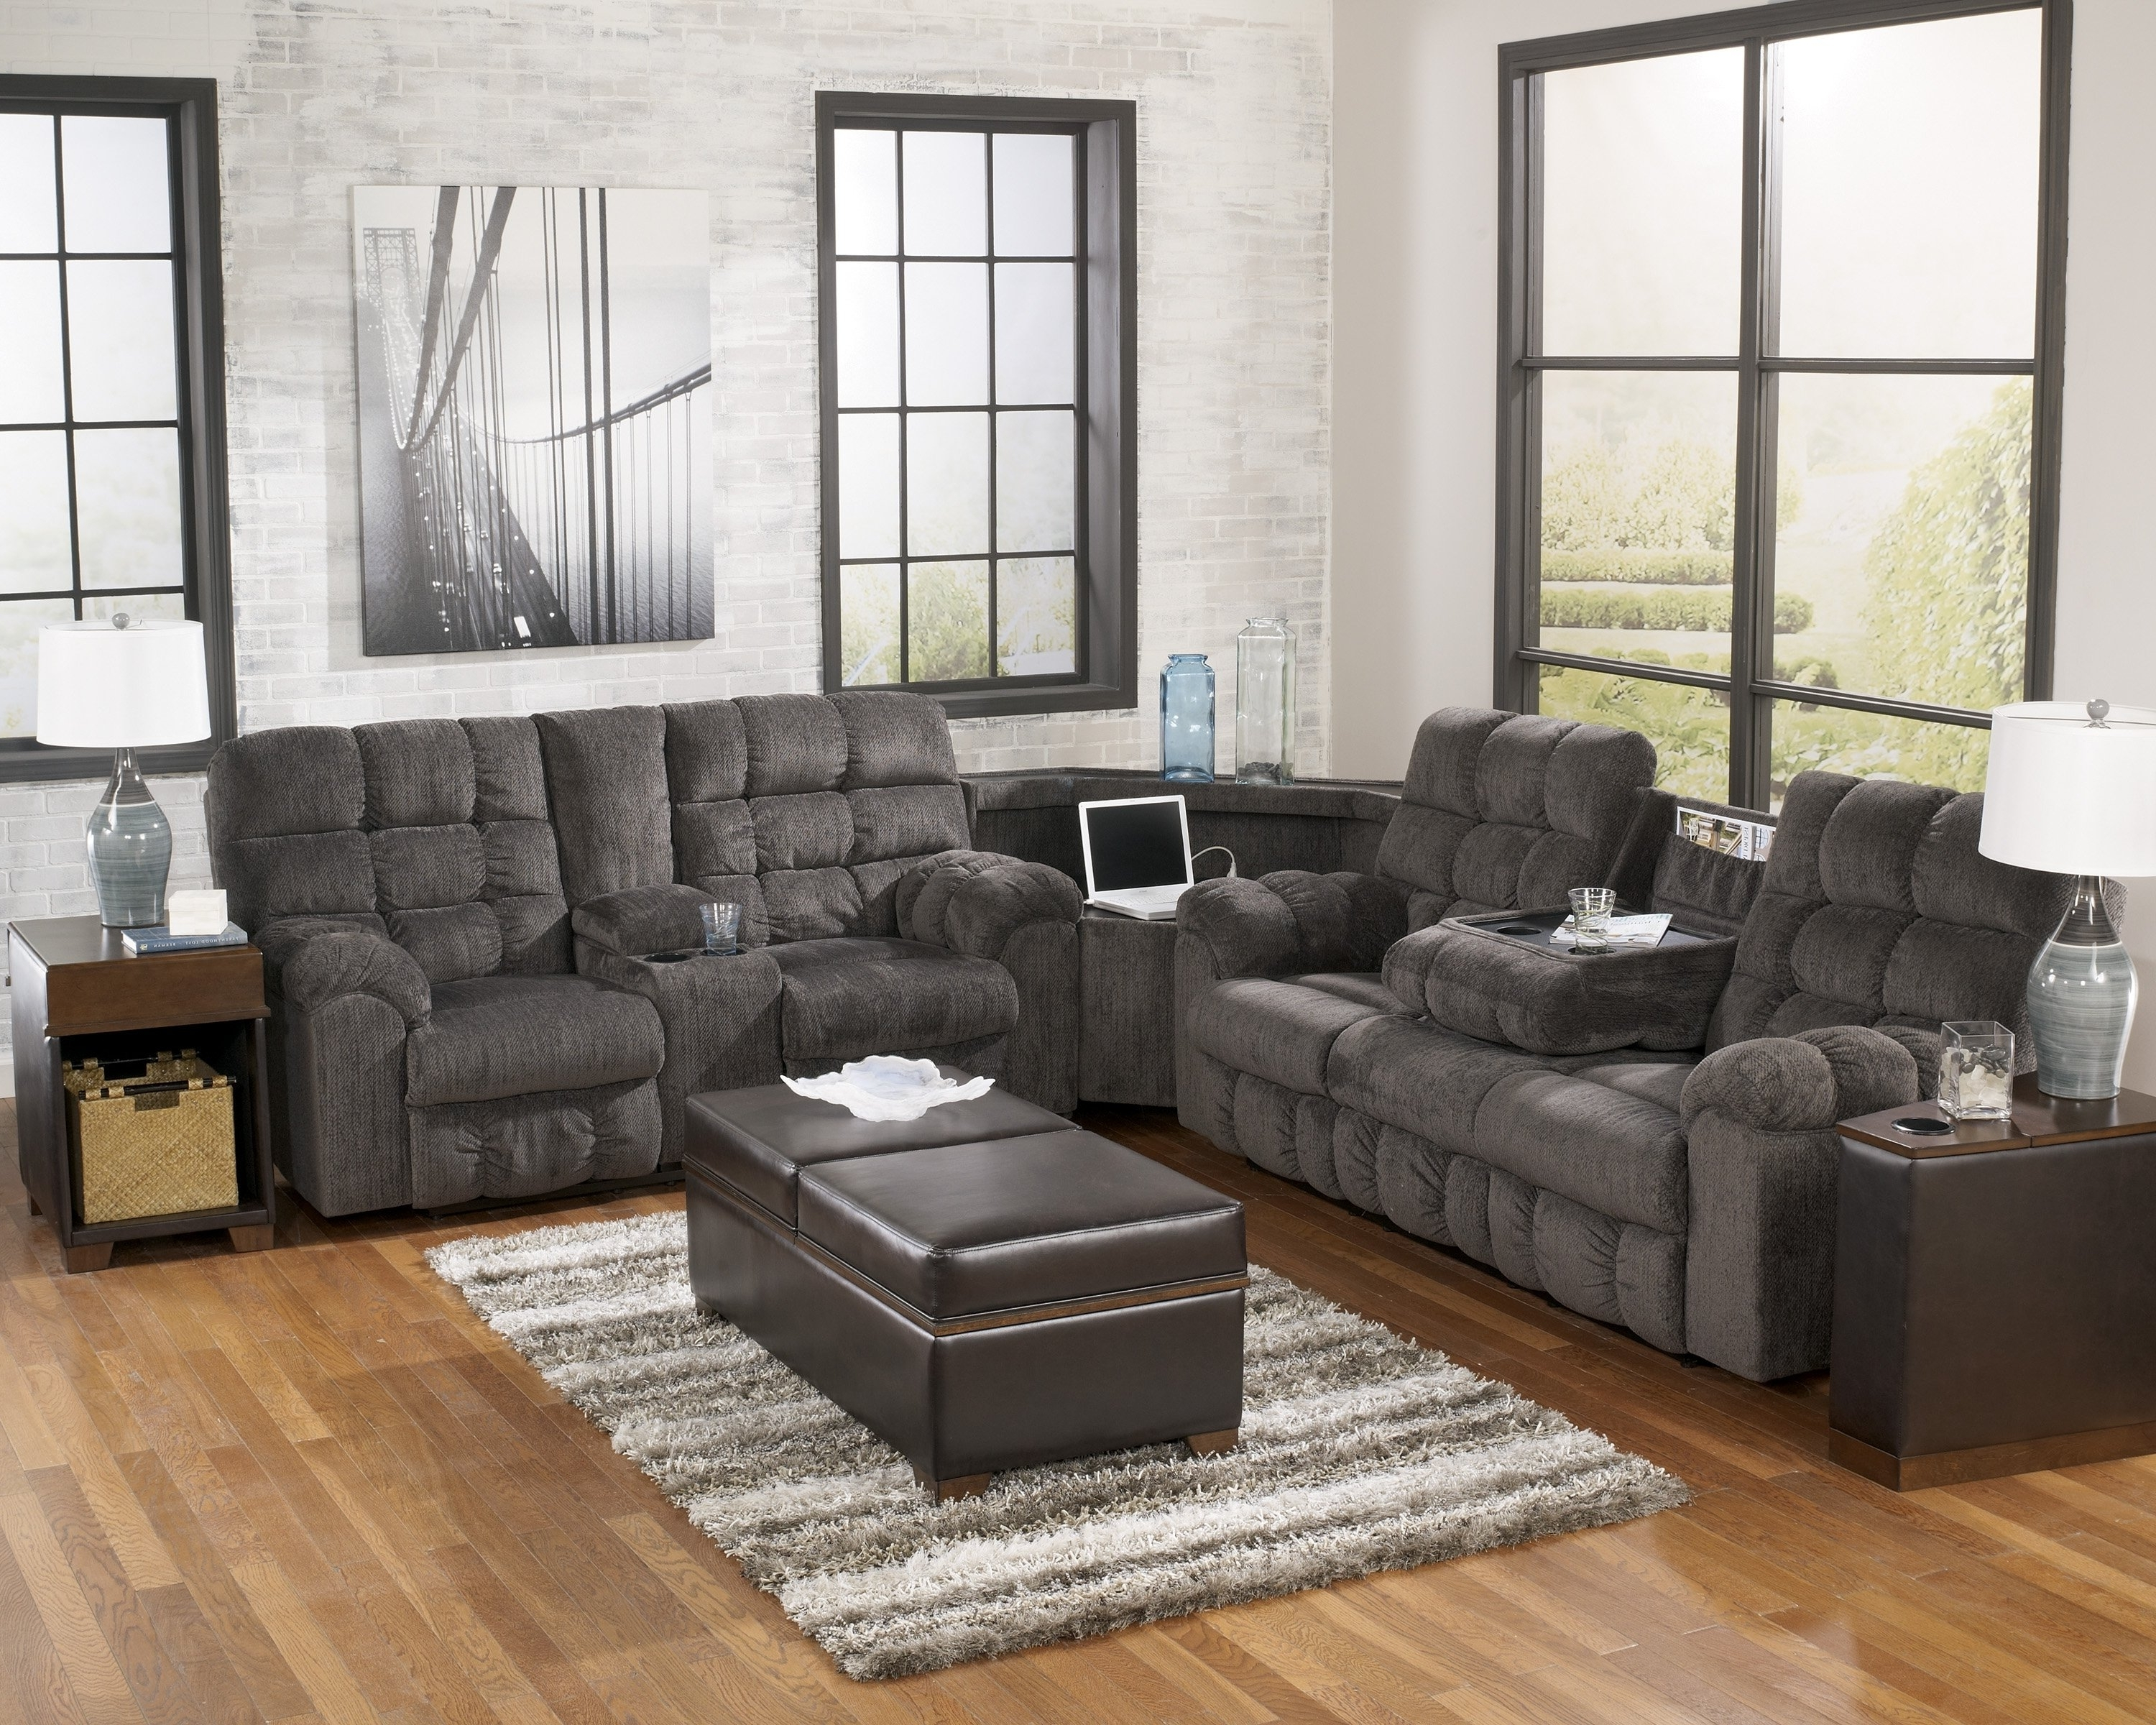 Sofas Center Sectional Sofas Ashley Furniture Excellent Faux For Inside Recent Sectional Sofas At Ashley (View 14 of 20)